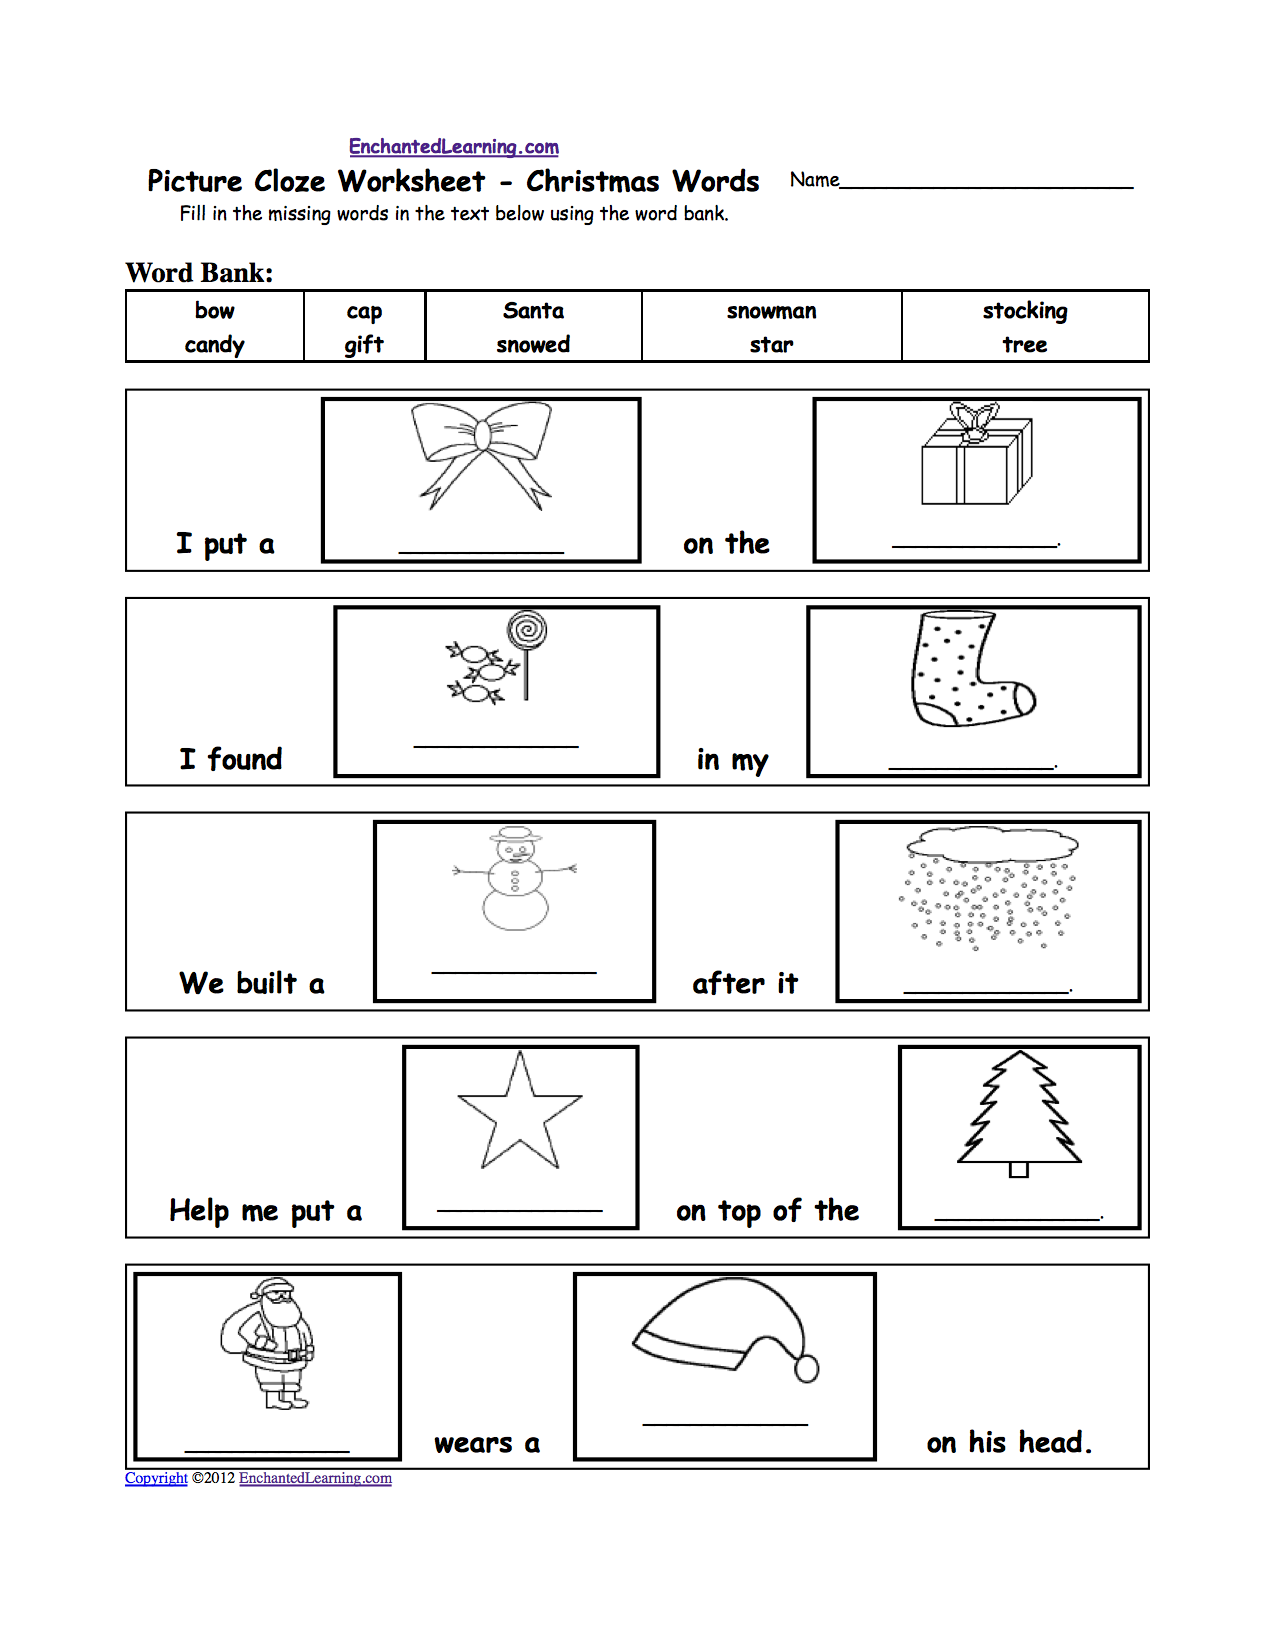 Worksheets Christmas Worksheets For Kids christmas crafts for kids enchantedlearning com or go to the answers cloze picture words printable worksheet